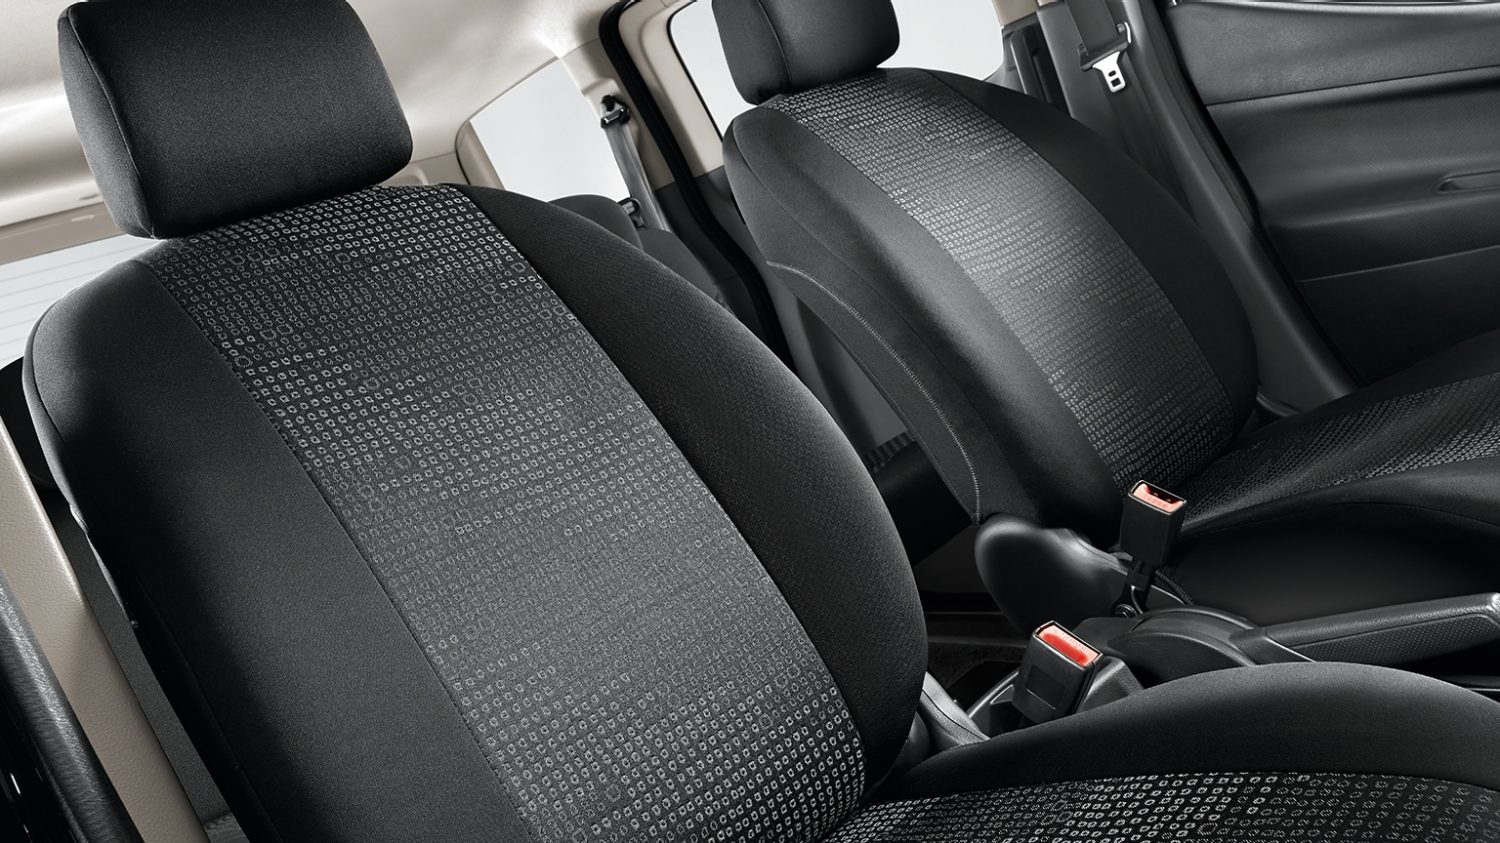 Nissan Evalia - Interior - Seat covers